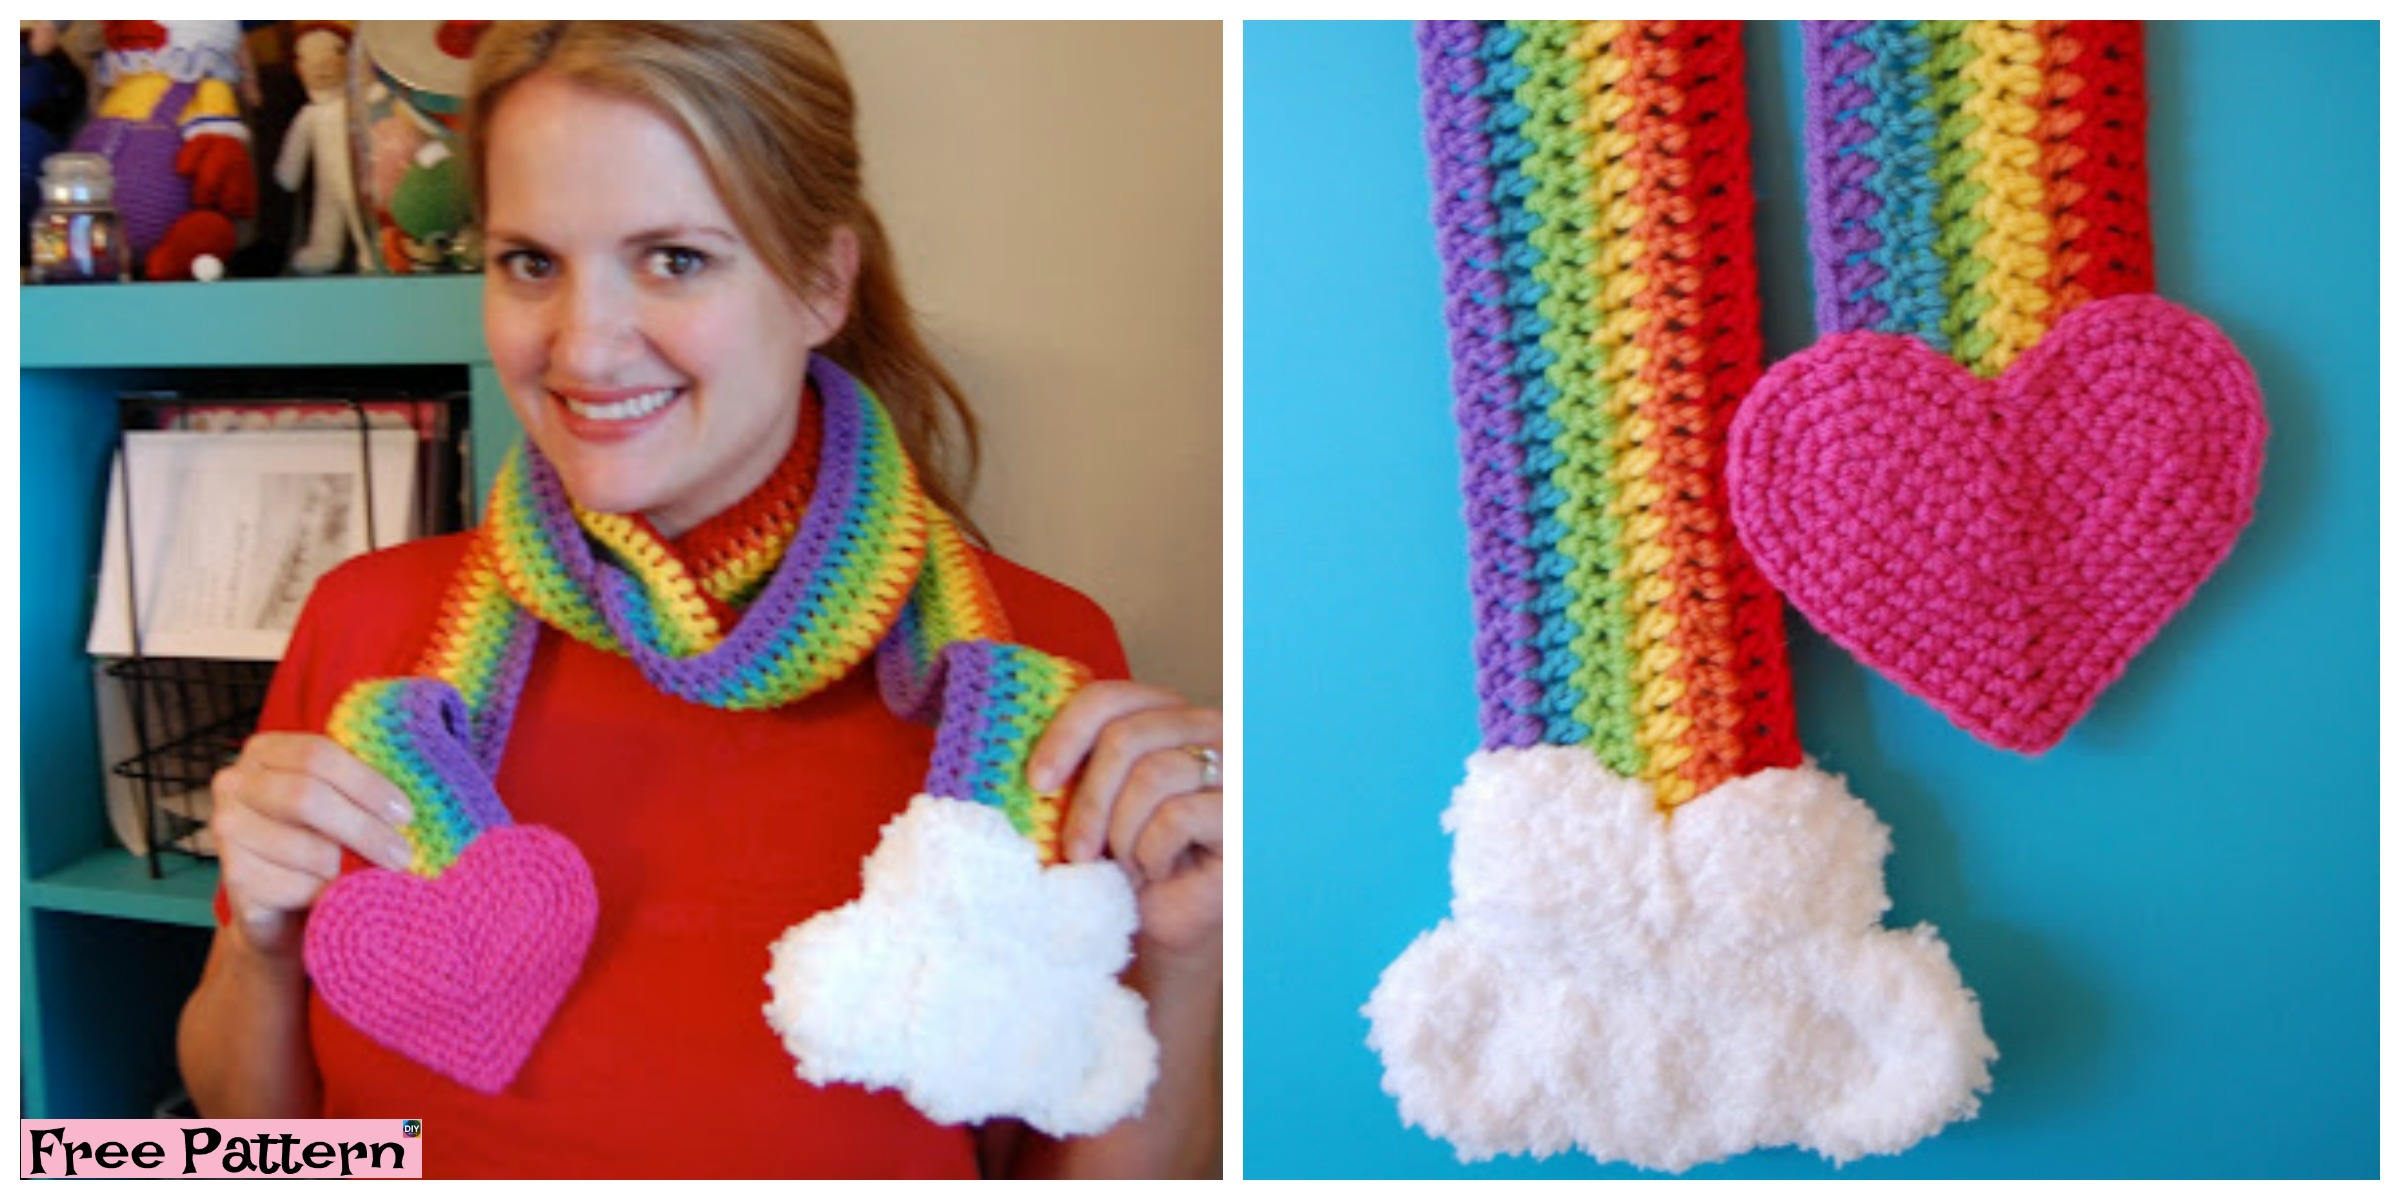 Cute Crochet Rainbow Scarf – Free Pattern